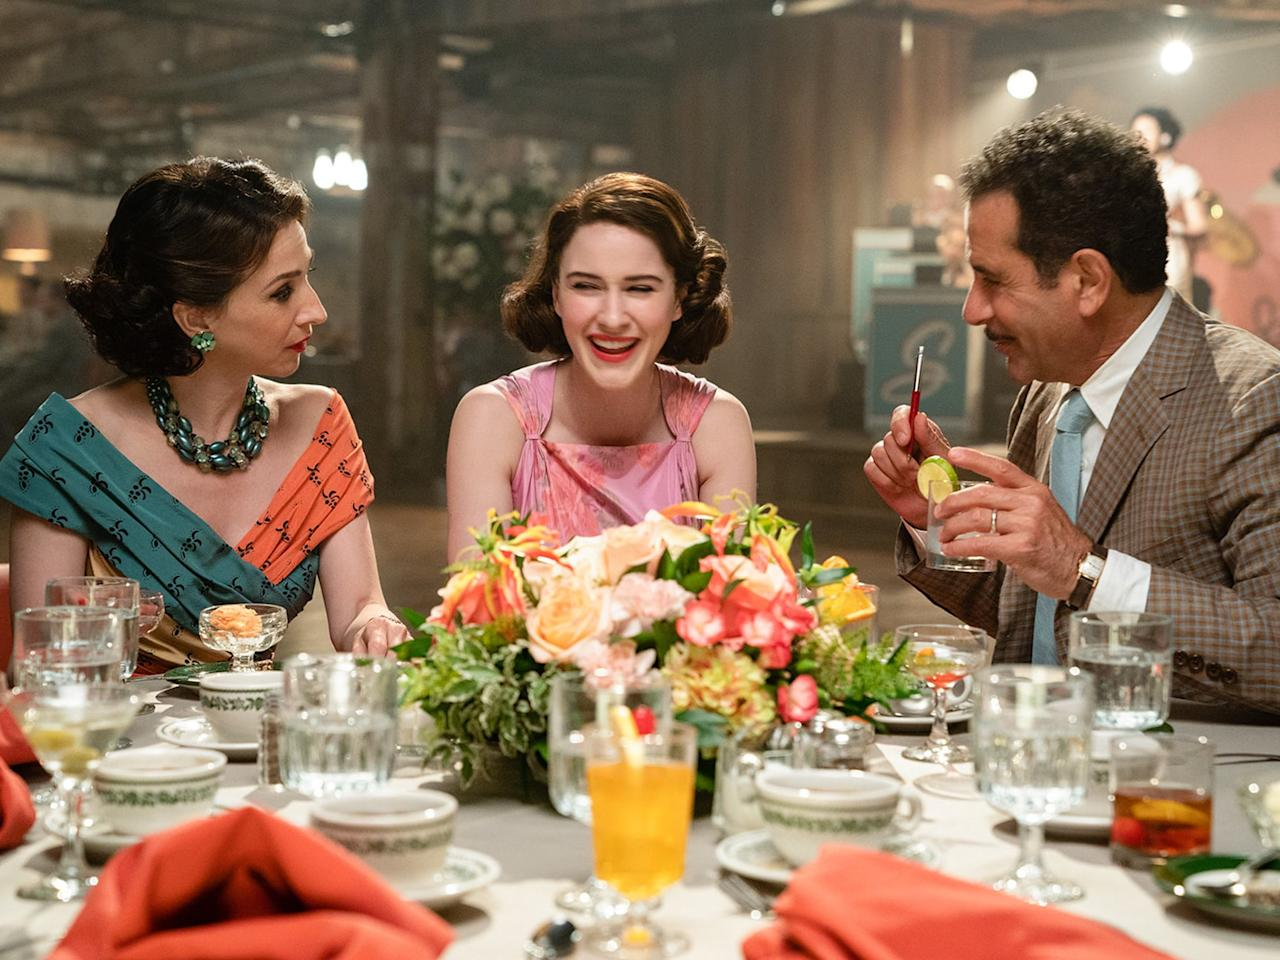 """<p><strong>Price: </strong>$13 per month for a full Prime subscription; $9 per month for Prime Video only</p> <p><strong>Highlights of its library: </strong><strong><a href=""""https://www.popsugar.com/latest/The-Marvelous-Mrs-Maisel"""" class=""""ga-track"""" data-ga-category=""""Related"""" data-ga-label=""""http://www.popsugar.com/latest/The-Marvelous-Mrs-Maisel"""" data-ga-action=""""In-Line Links"""">The Marvelous Mrs. Maisel</a></strong>, <strong>The Man in the High Castle</strong>, <strong>Carnival Row</strong>, <strong>Transparent</strong>, and <strong>Good Omens</strong> Additionally, Prime has the streaming rights for a large number of preexisting movies and TV shows.</p> <p><strong>Who it's good for:</strong> Prime's original programming is finally starting to get off the ground, but it lags behind some of its competitors with only a few successful, high-profile <a href=""""https://www.popsugar.com/entertainment/Best-Amazon-Original-TV-Shows-2019-45789755"""" class=""""ga-track"""" data-ga-category=""""Related"""" data-ga-label=""""http://www.popsugar.com/entertainment/Best-Amazon-Original-TV-Shows-2019-45789755"""" data-ga-action=""""In-Line Links"""">original shows</a> and minimal original movies that have made a splash. However, if you enjoy stylish, well-crafted shows geared at an adult audience, Prime may be right for you. </p>"""